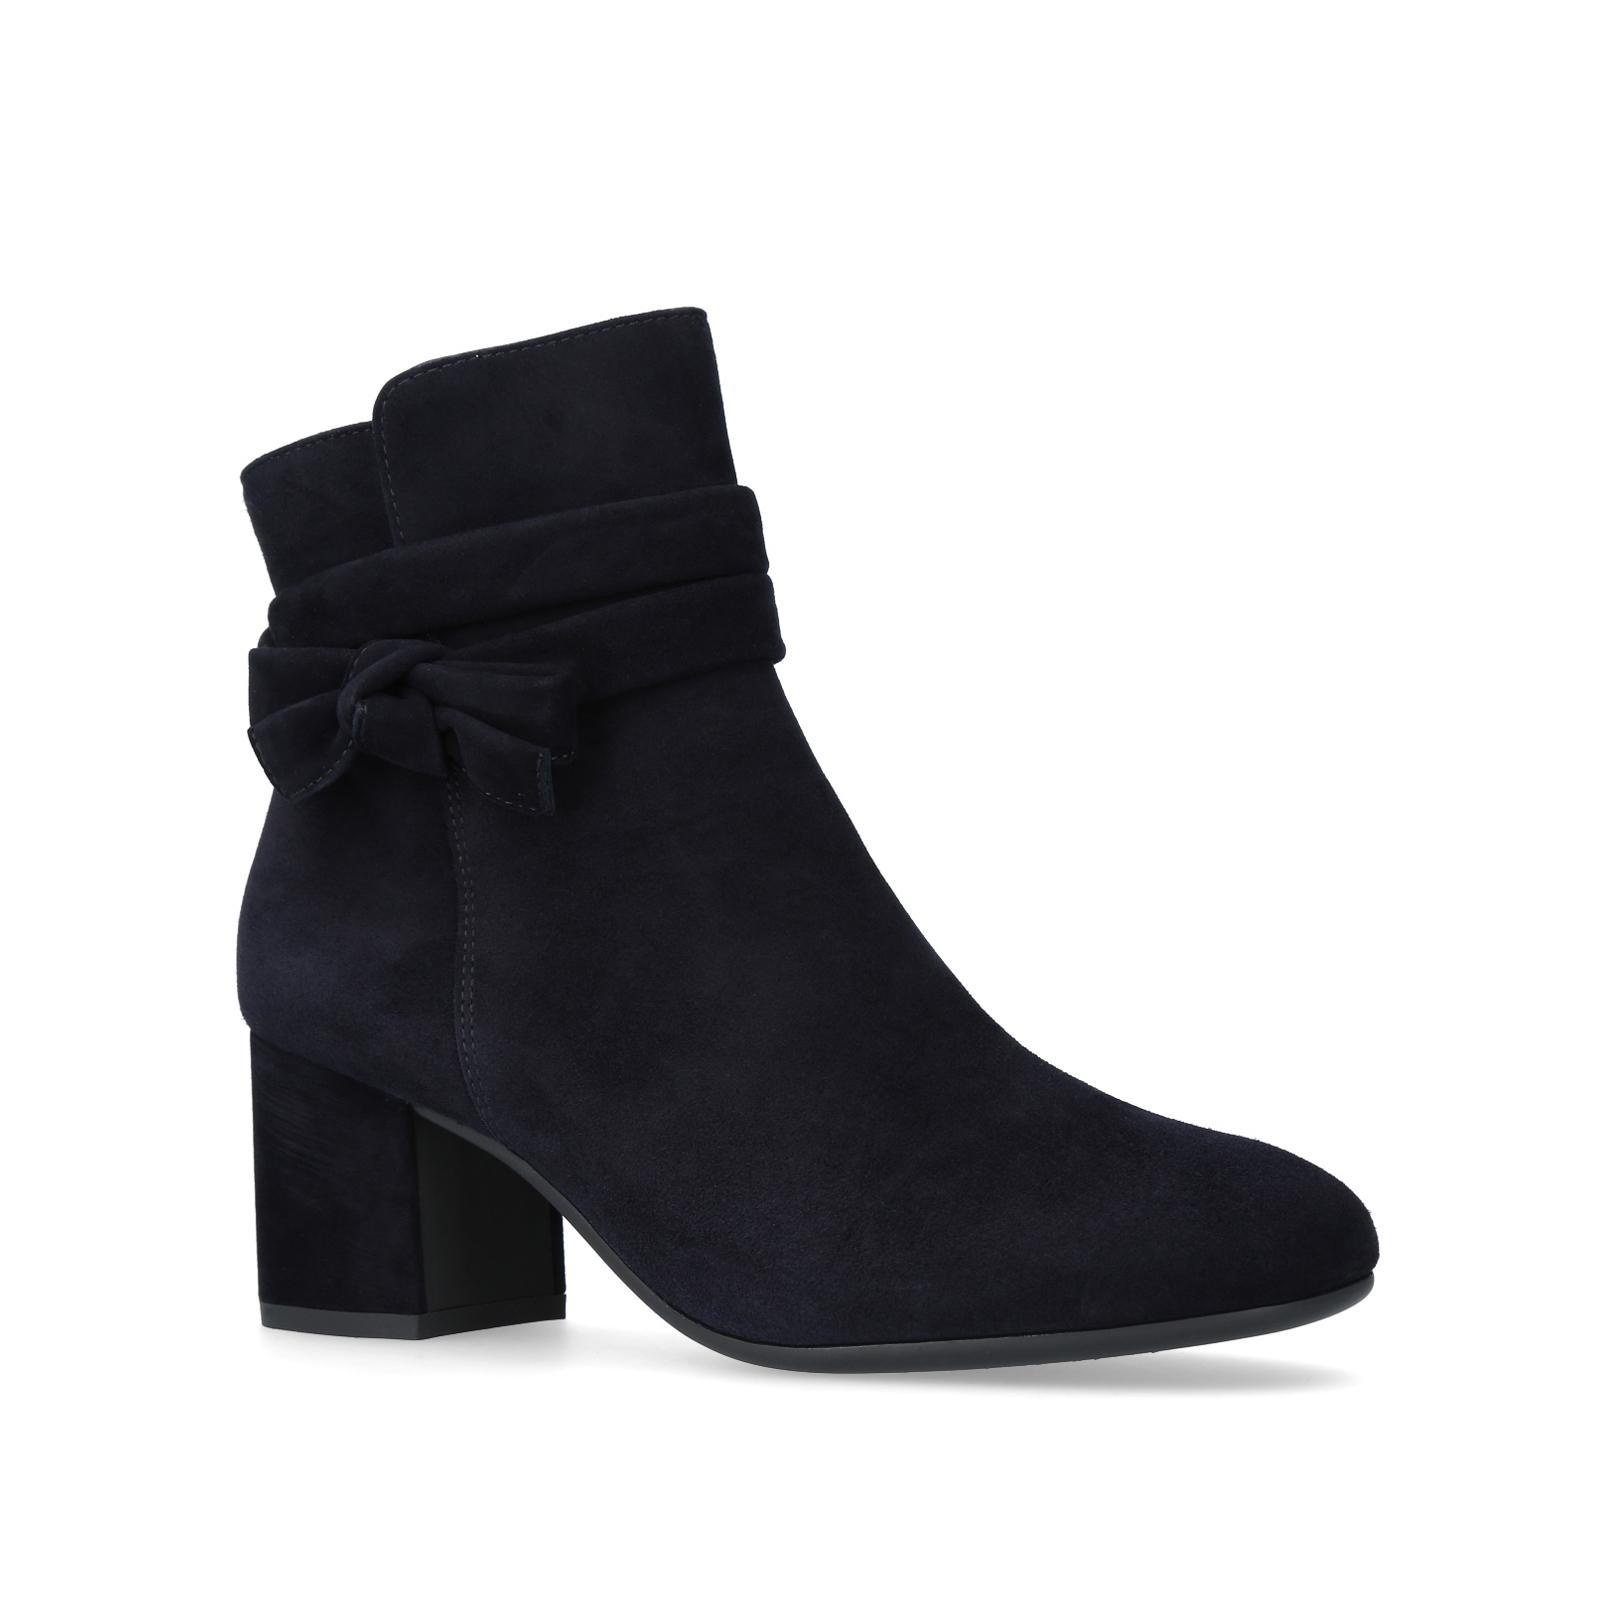 Paul Green Sara ank bt - grey suede ankle boot Quality Free Shipping Outlet Outlet Cheap Outlet Cheap Authentic Low Cost Cheap Price q0dGg3HwJc